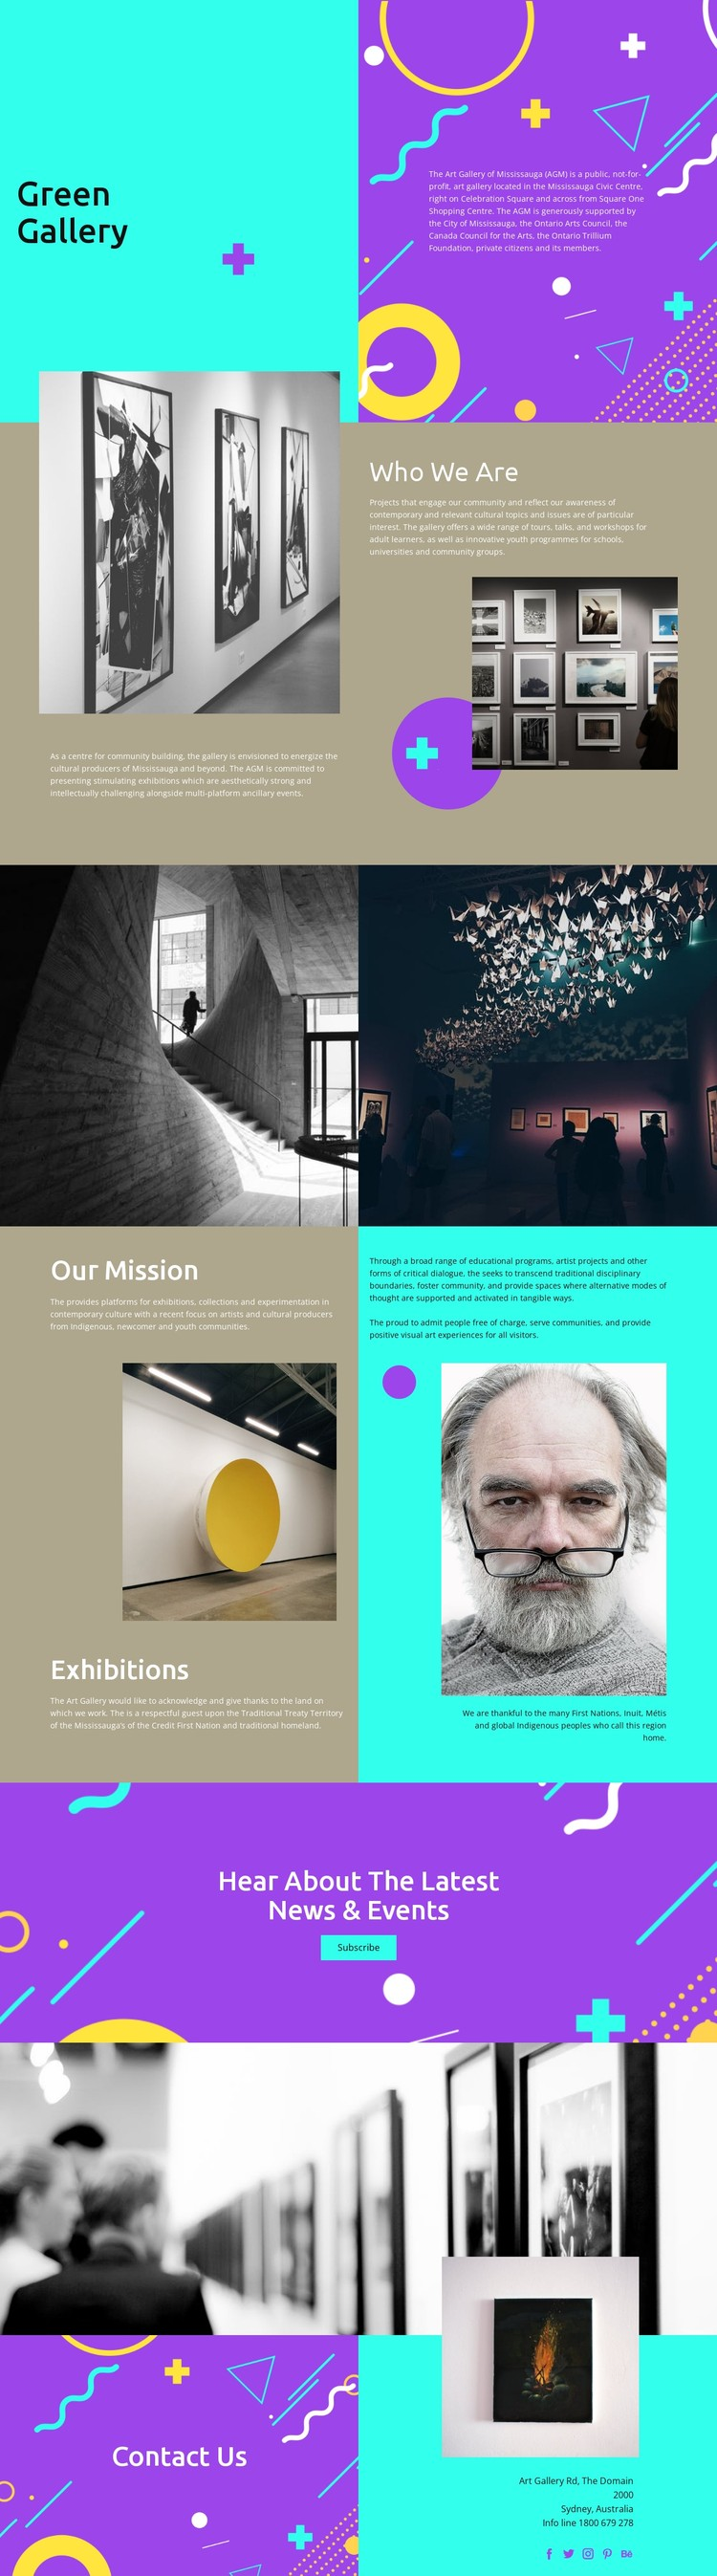 Gallery of fashion photographers CSS Template